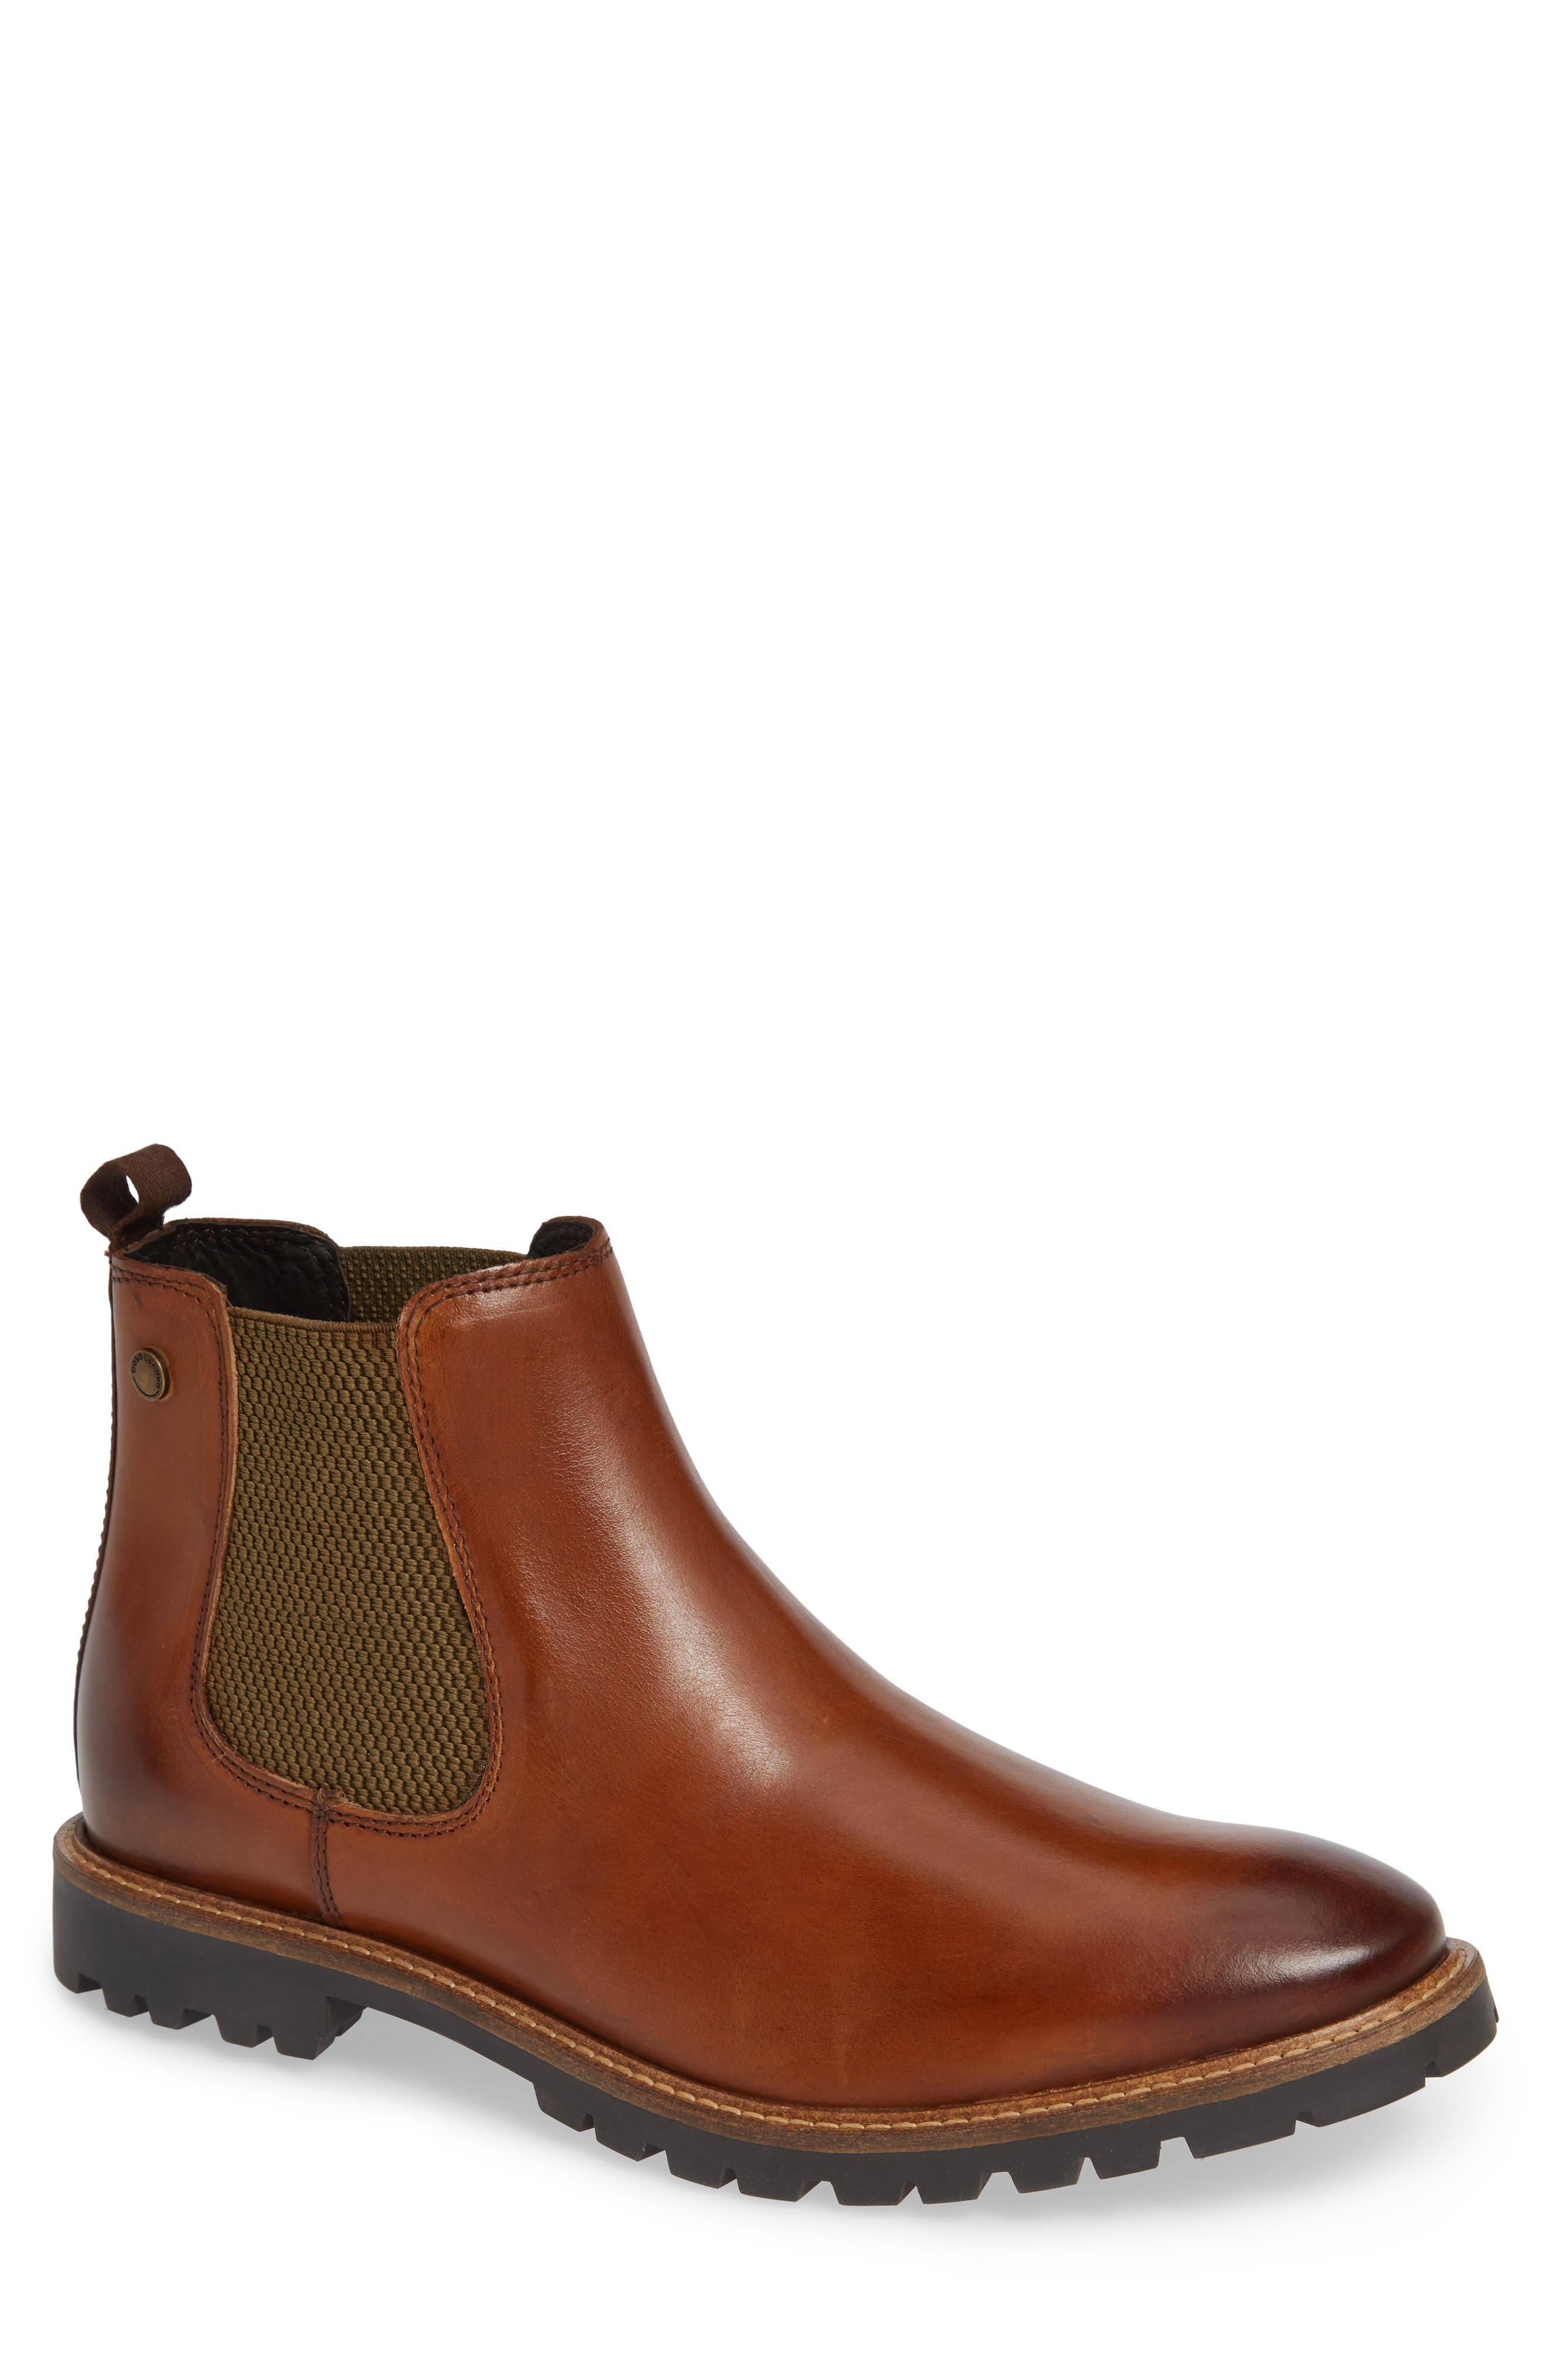 Havoc Lugged Chelsea Boot,                         Main,                         color, TAN